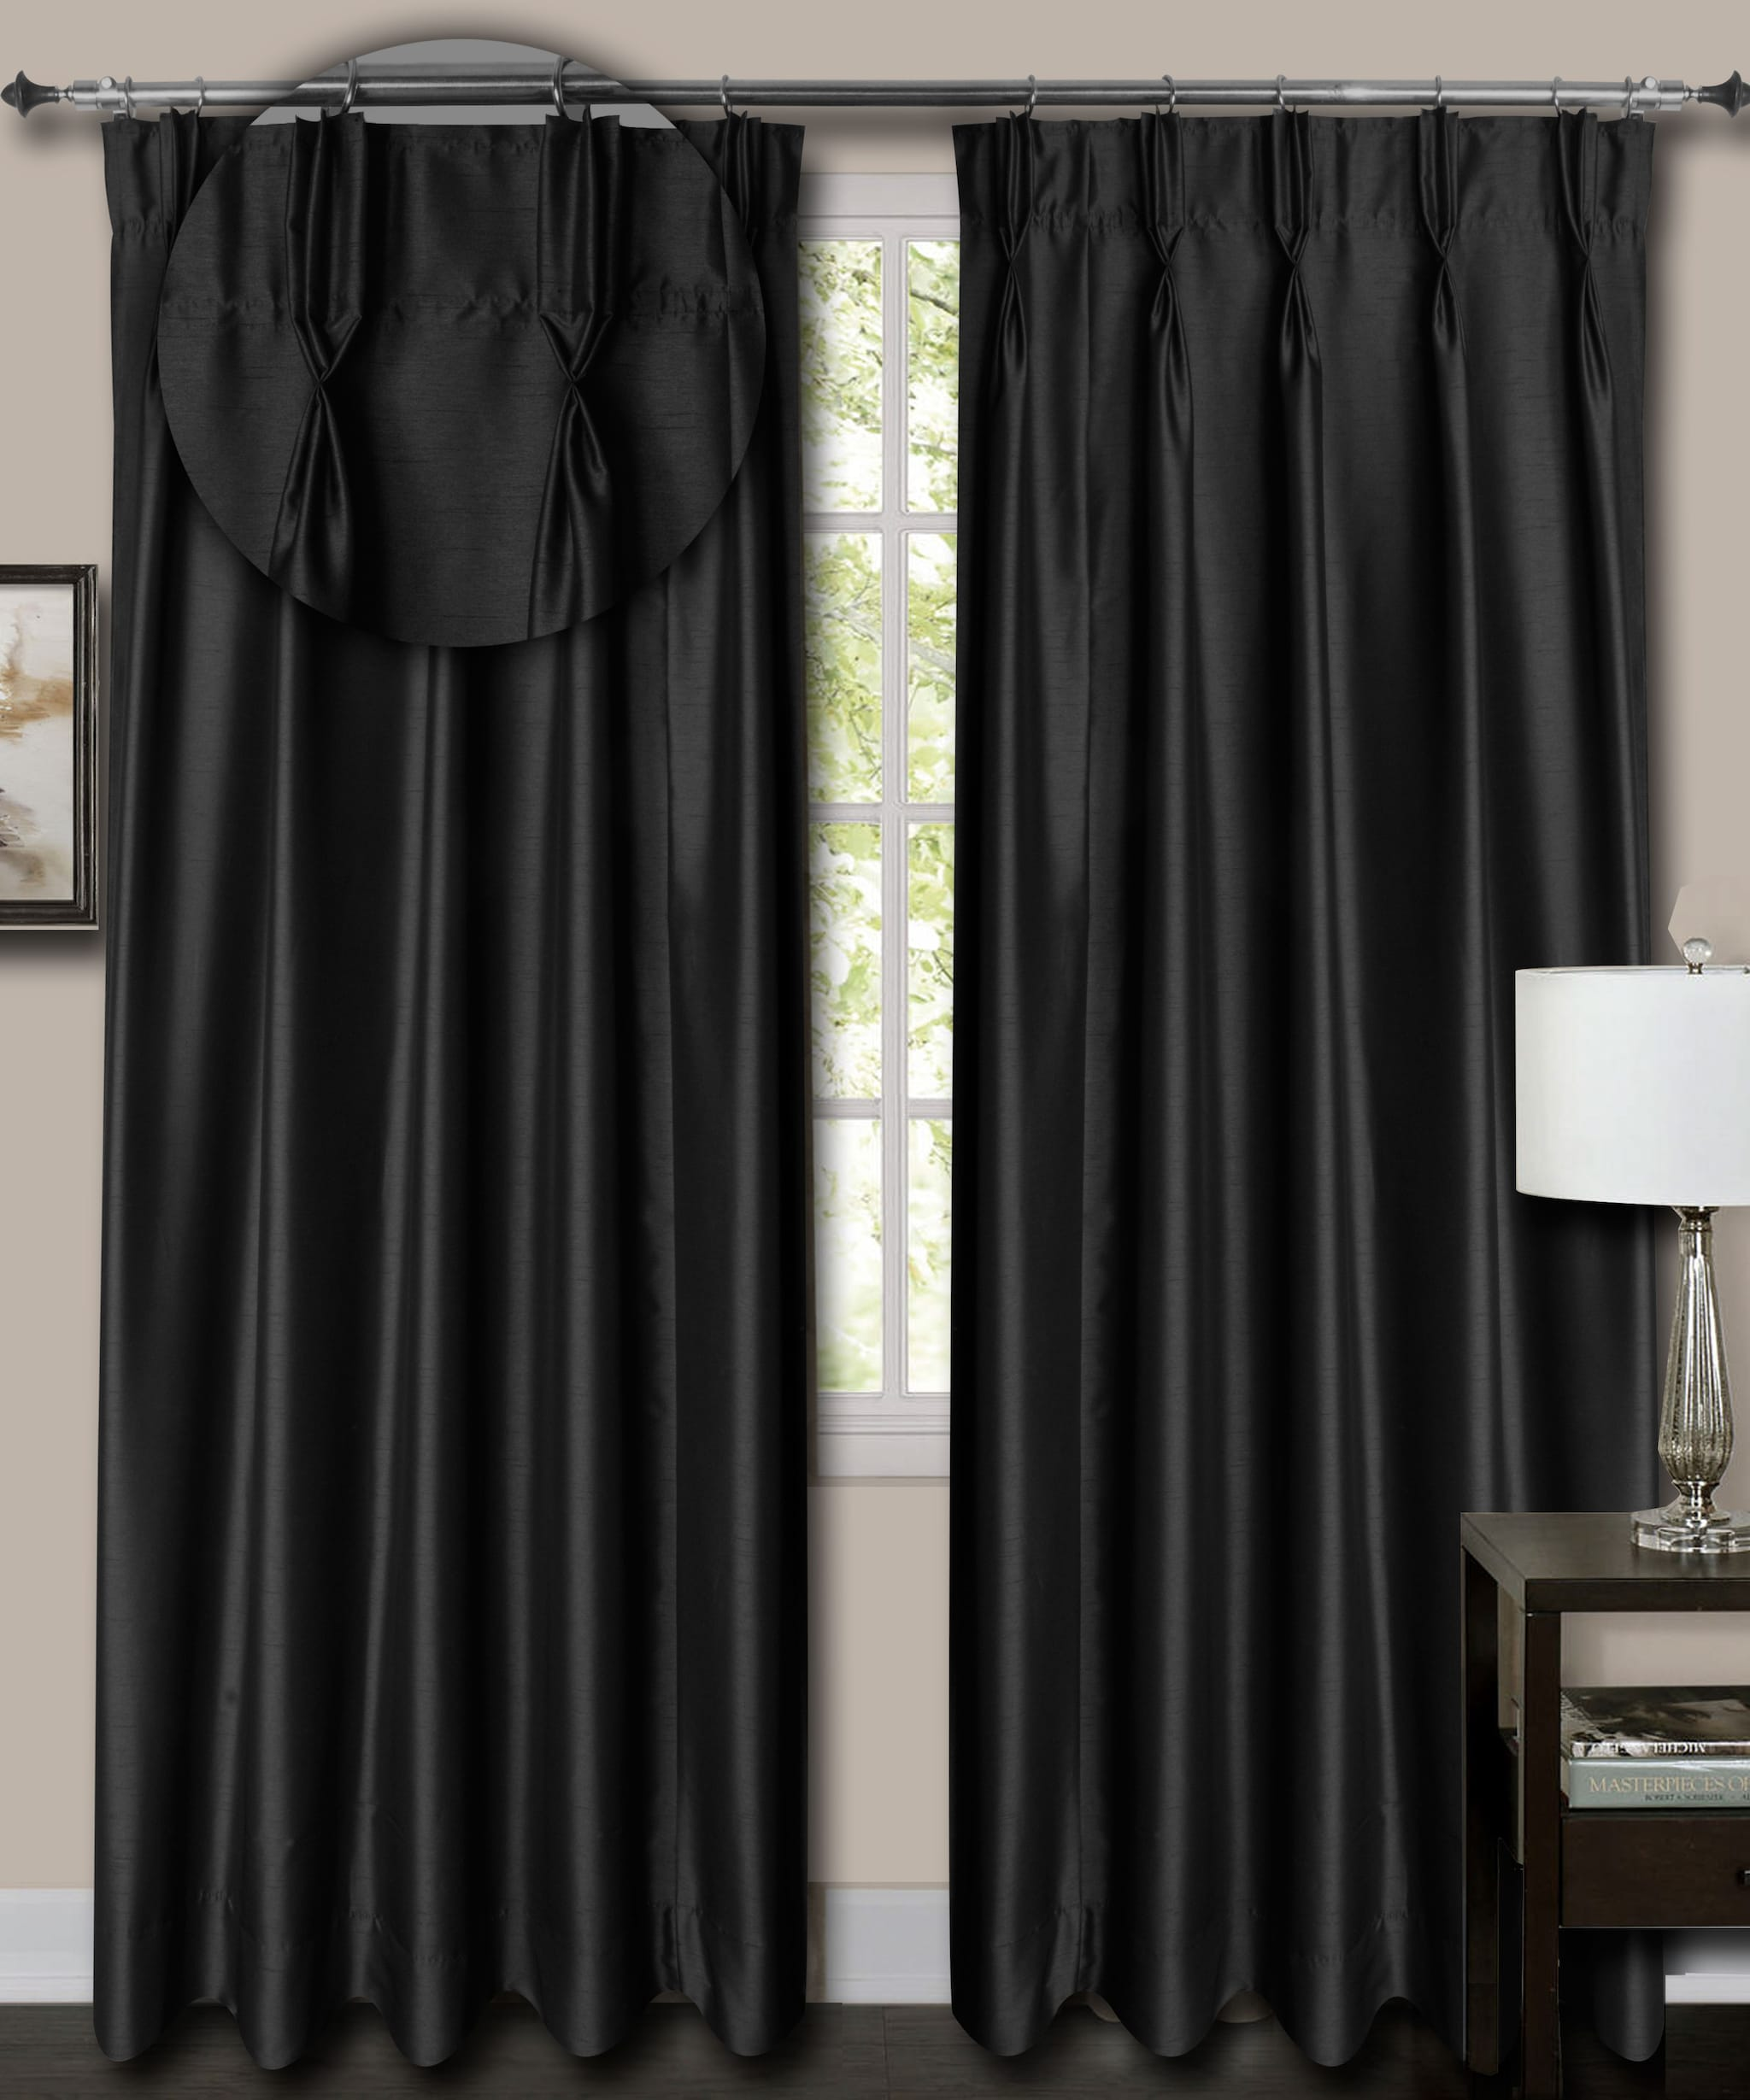 "French Pleat Top Black Faux Silk Dupioni Curtains. (39"" Wide,9 Feet Long,Blackout Lining)"